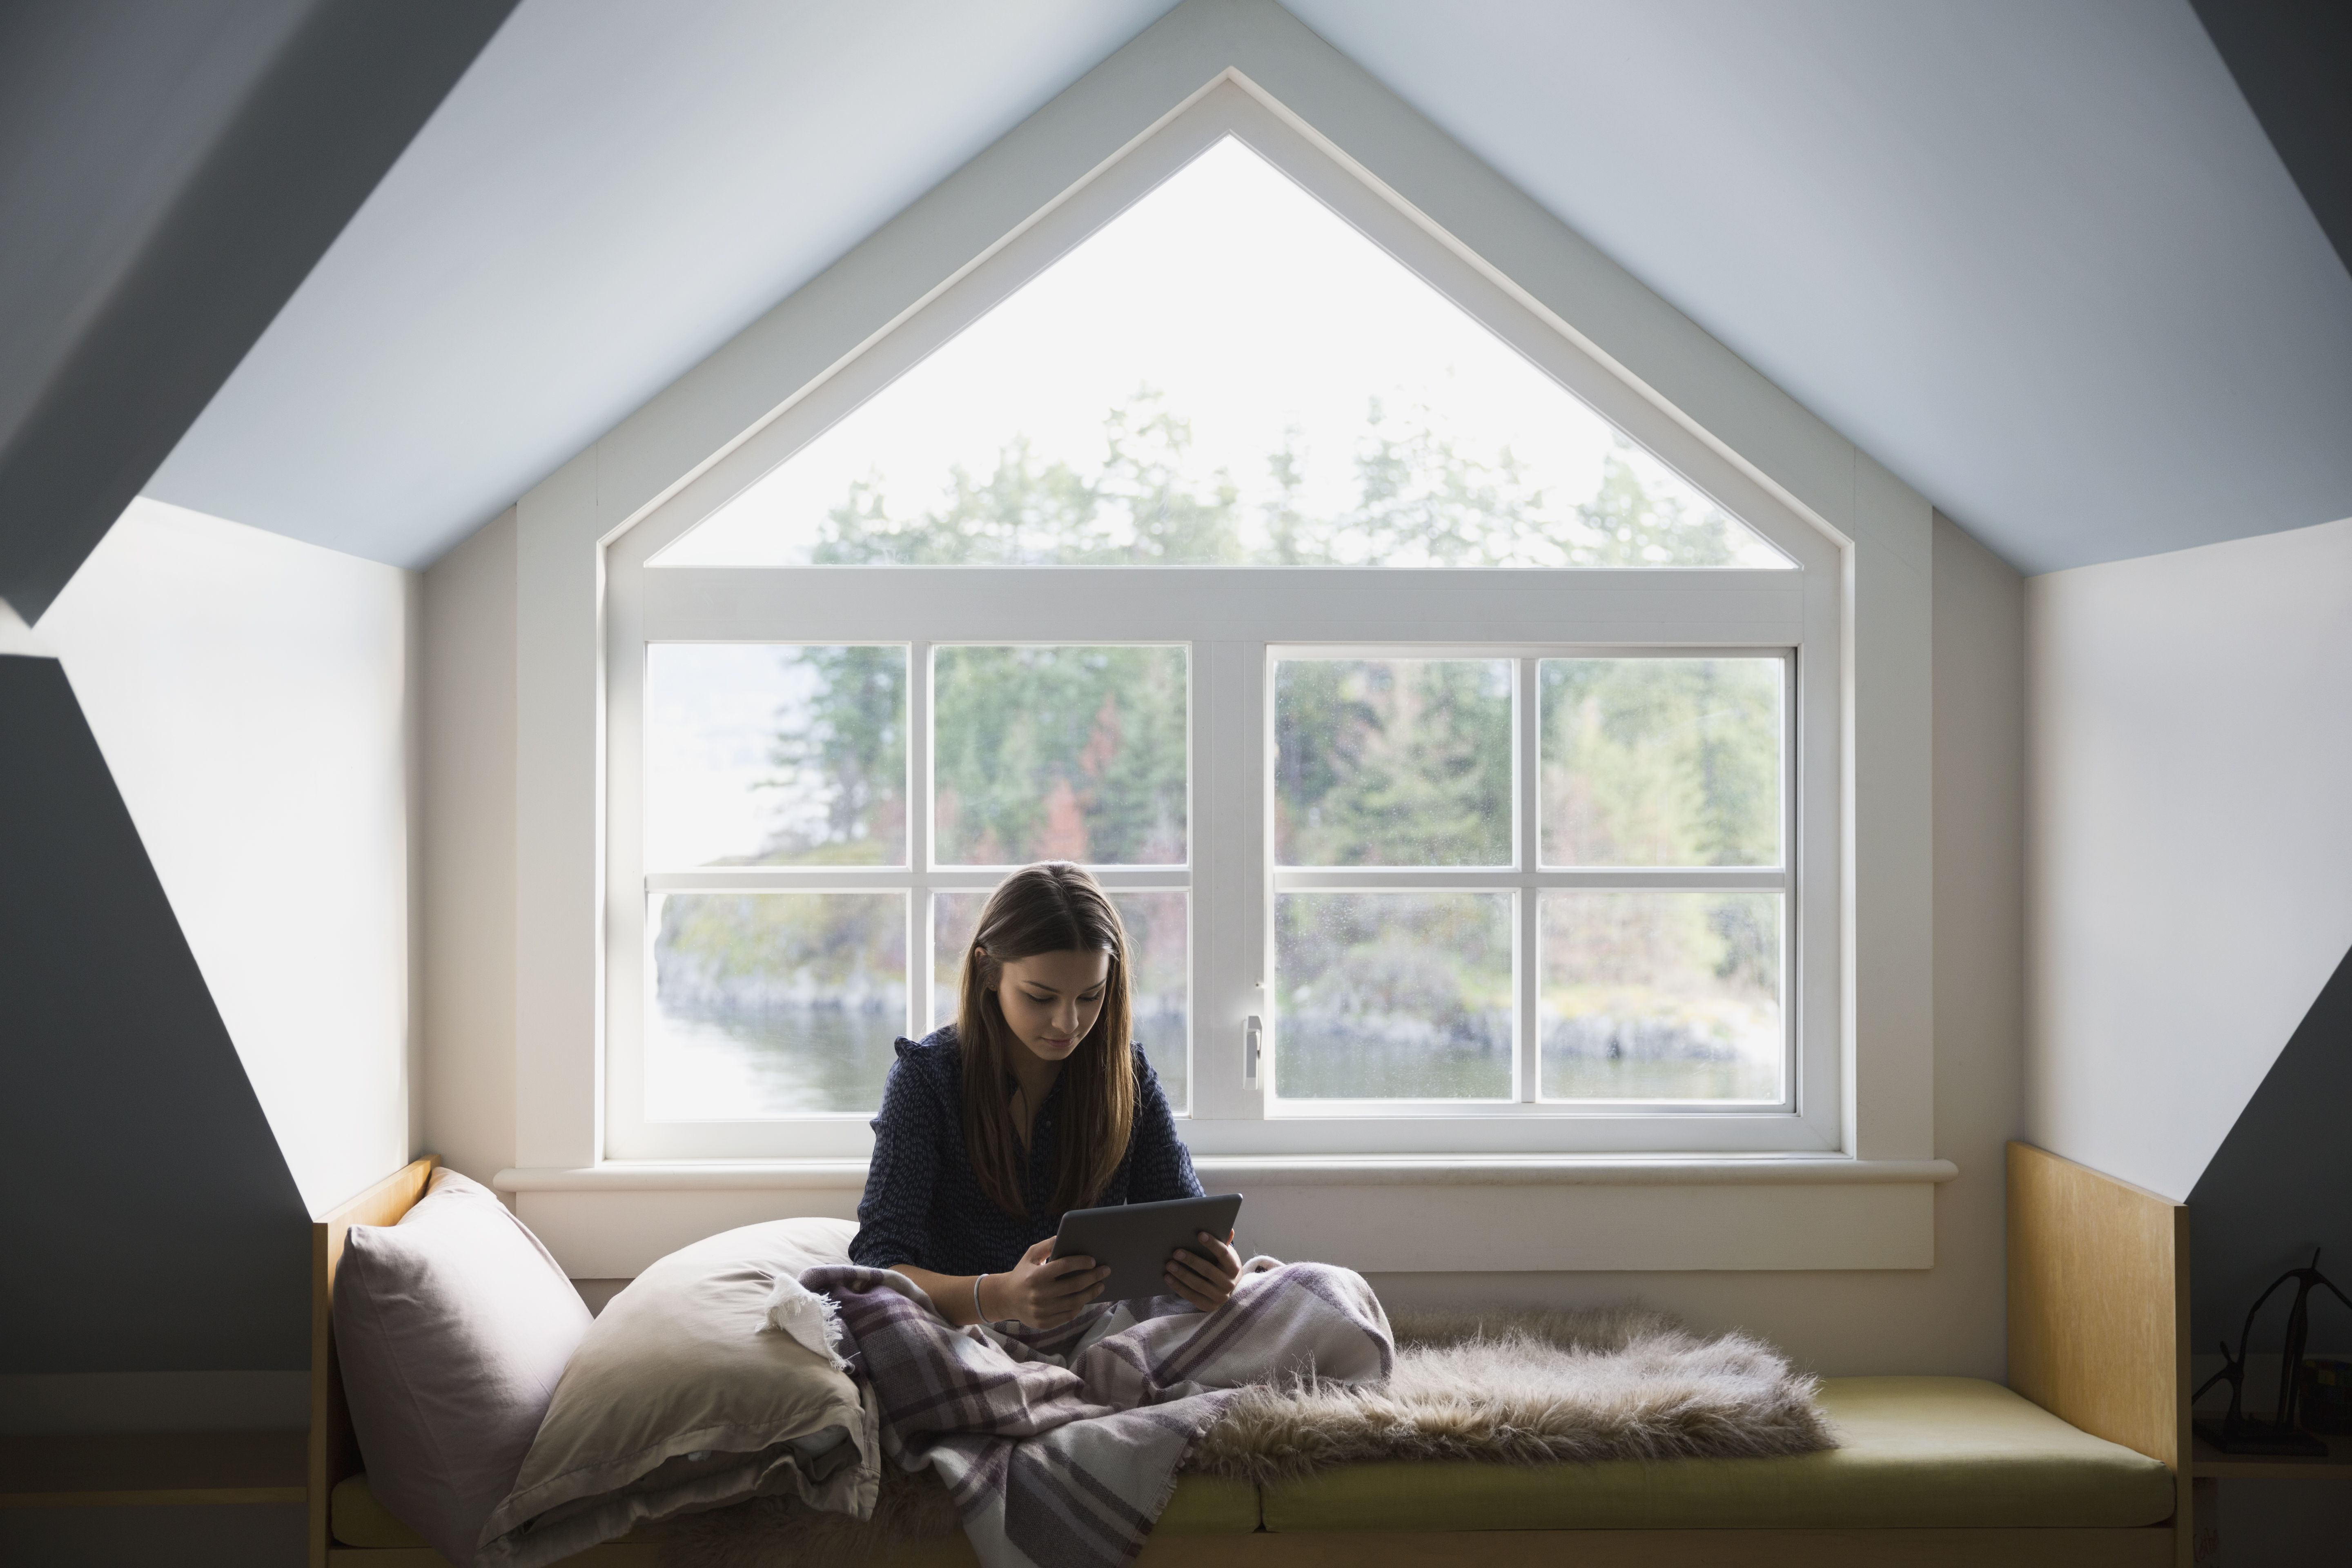 Teenage girl with digital tablet in dormer alcove window seat